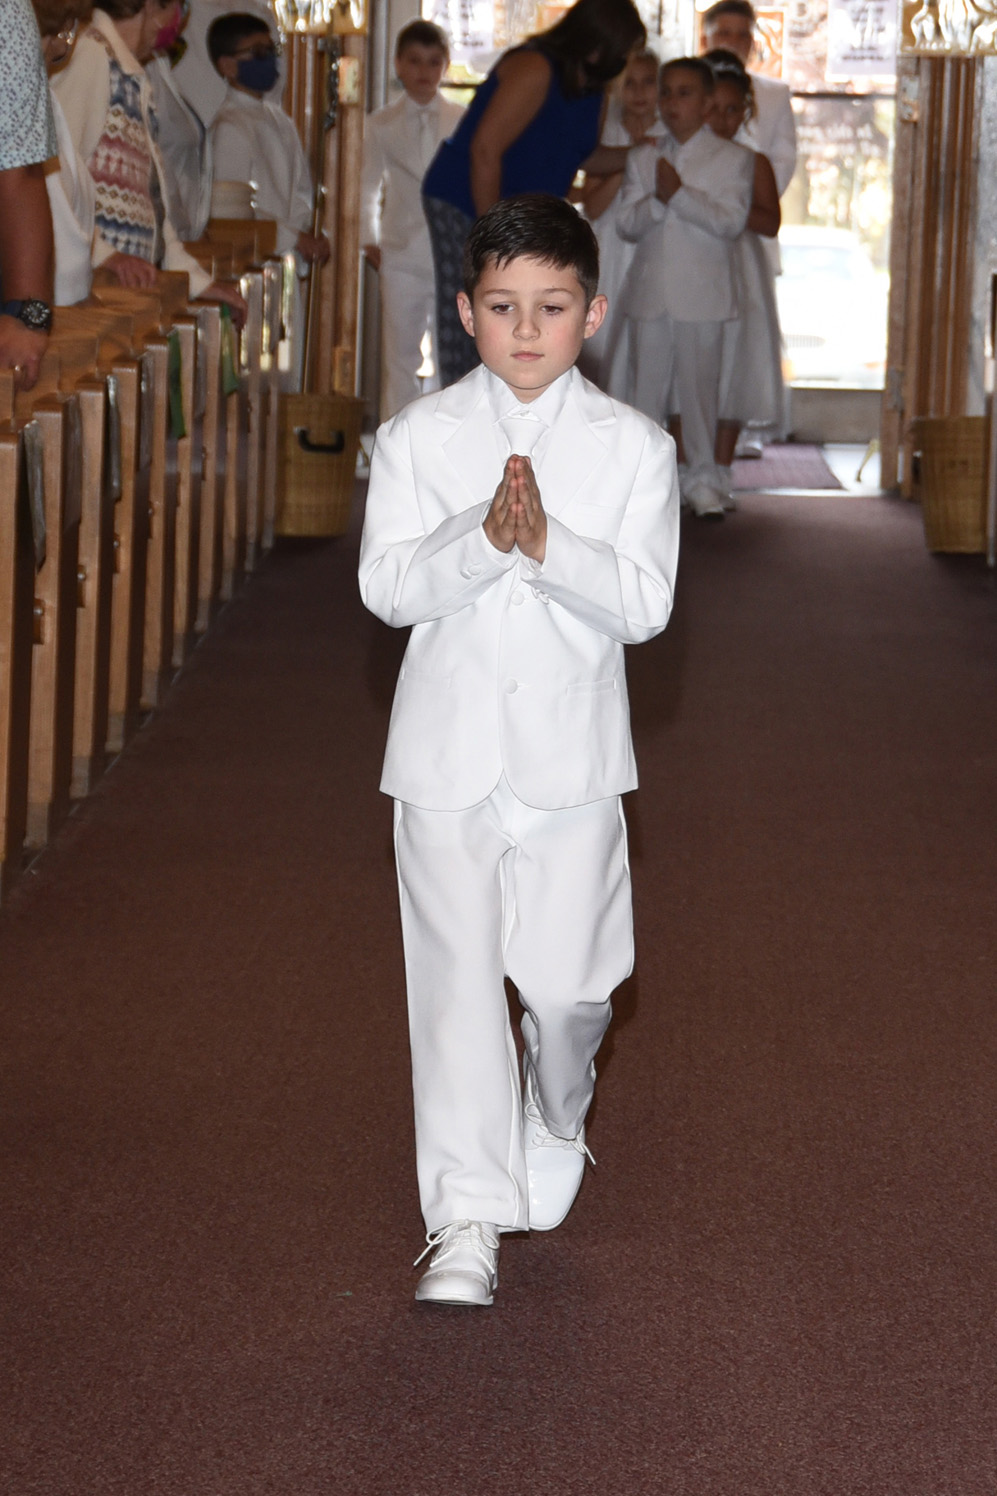 FIRST-COMMUNION-MAY-15-2021-10011049